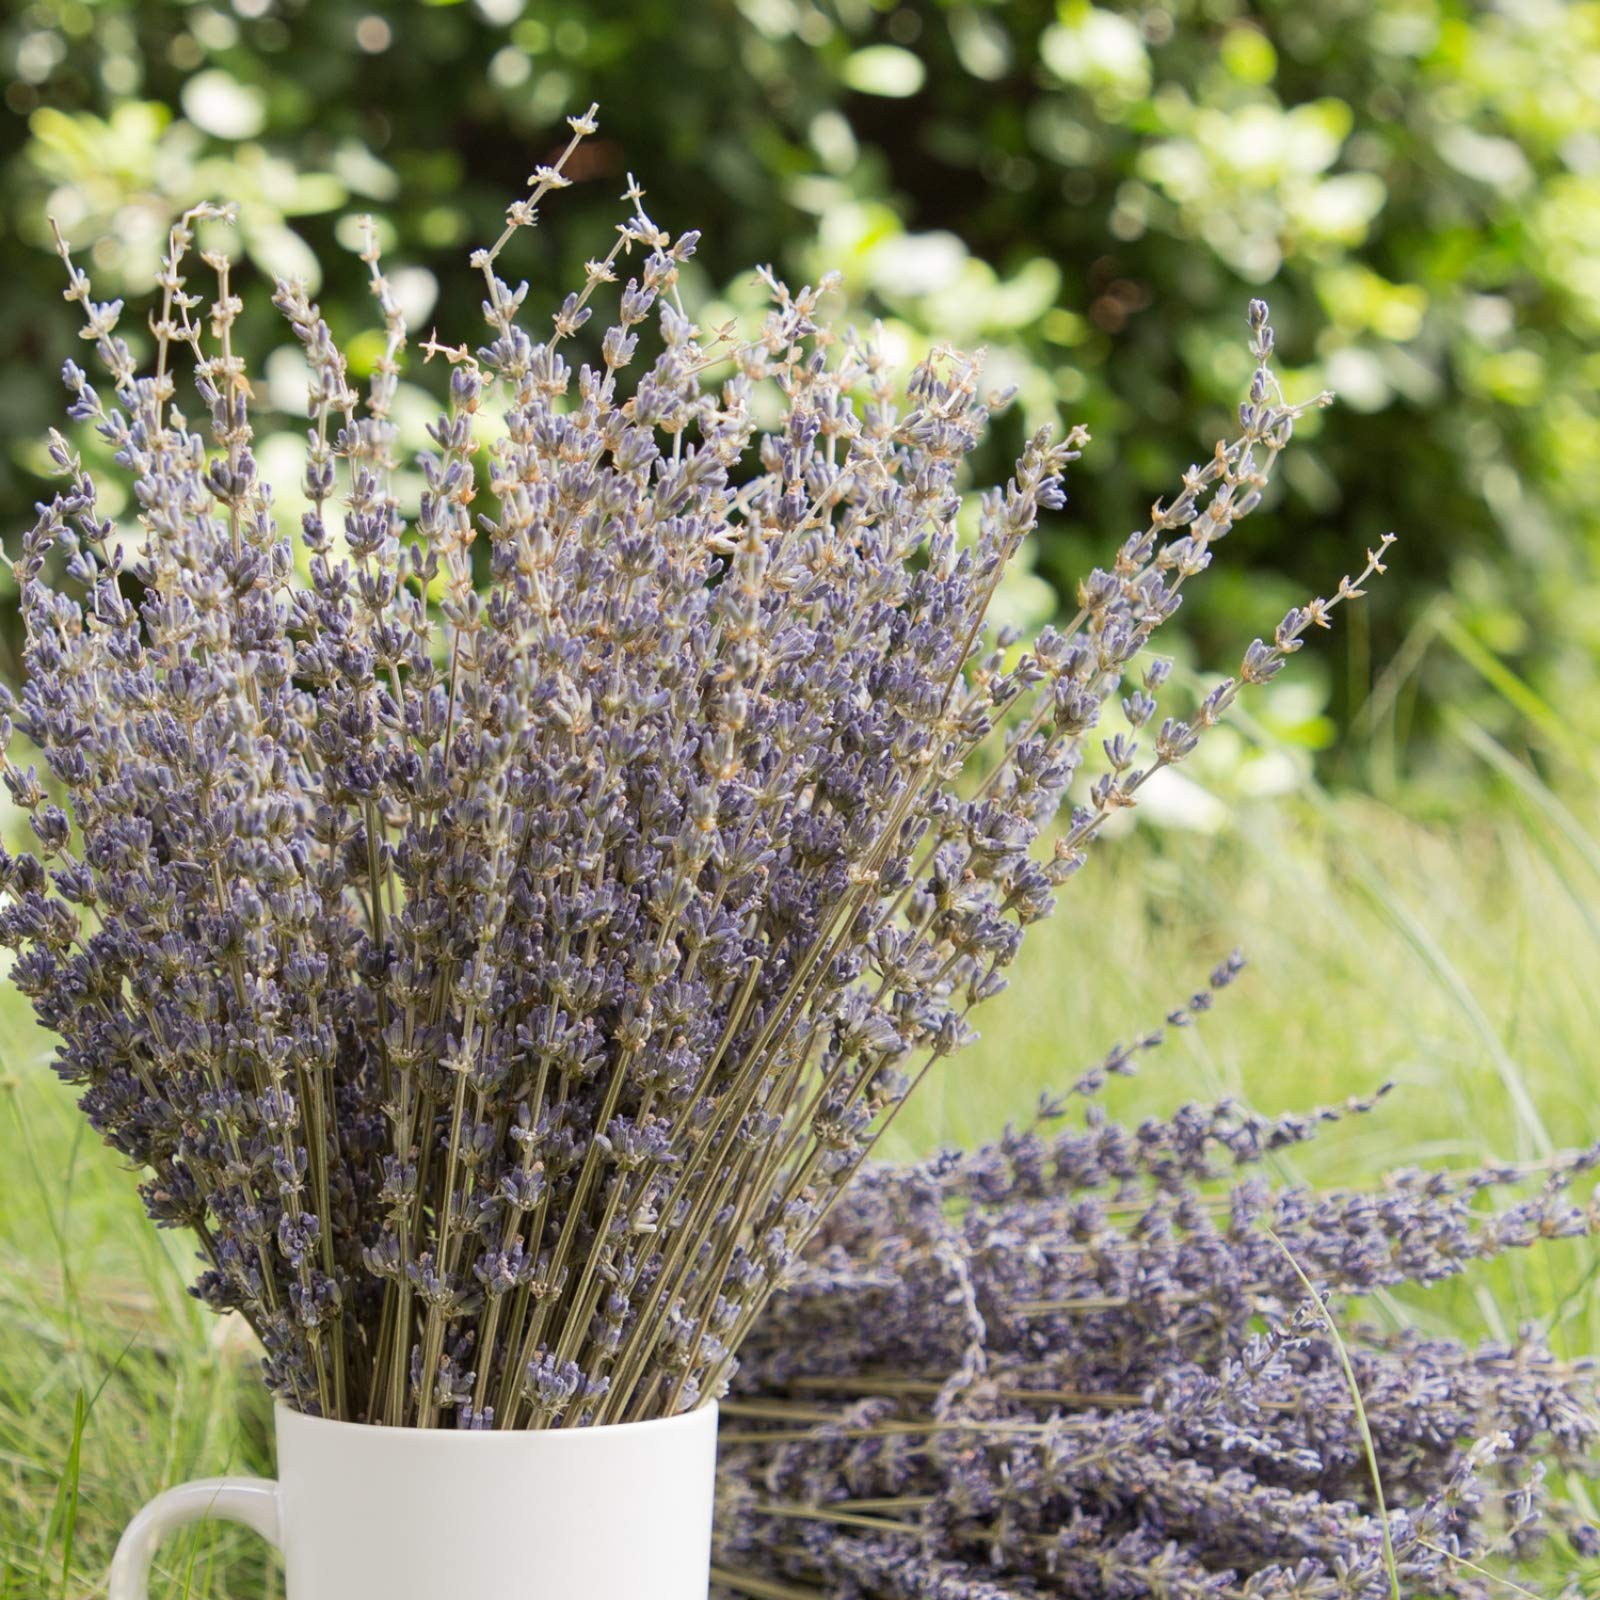 Timoo Dried Lavender Bundles 100% Natural DriedLavenderFlowers for Home Decoration, Photo Props, Home Fragrance, 2 Bundles Pack by Timoo (Image #2)